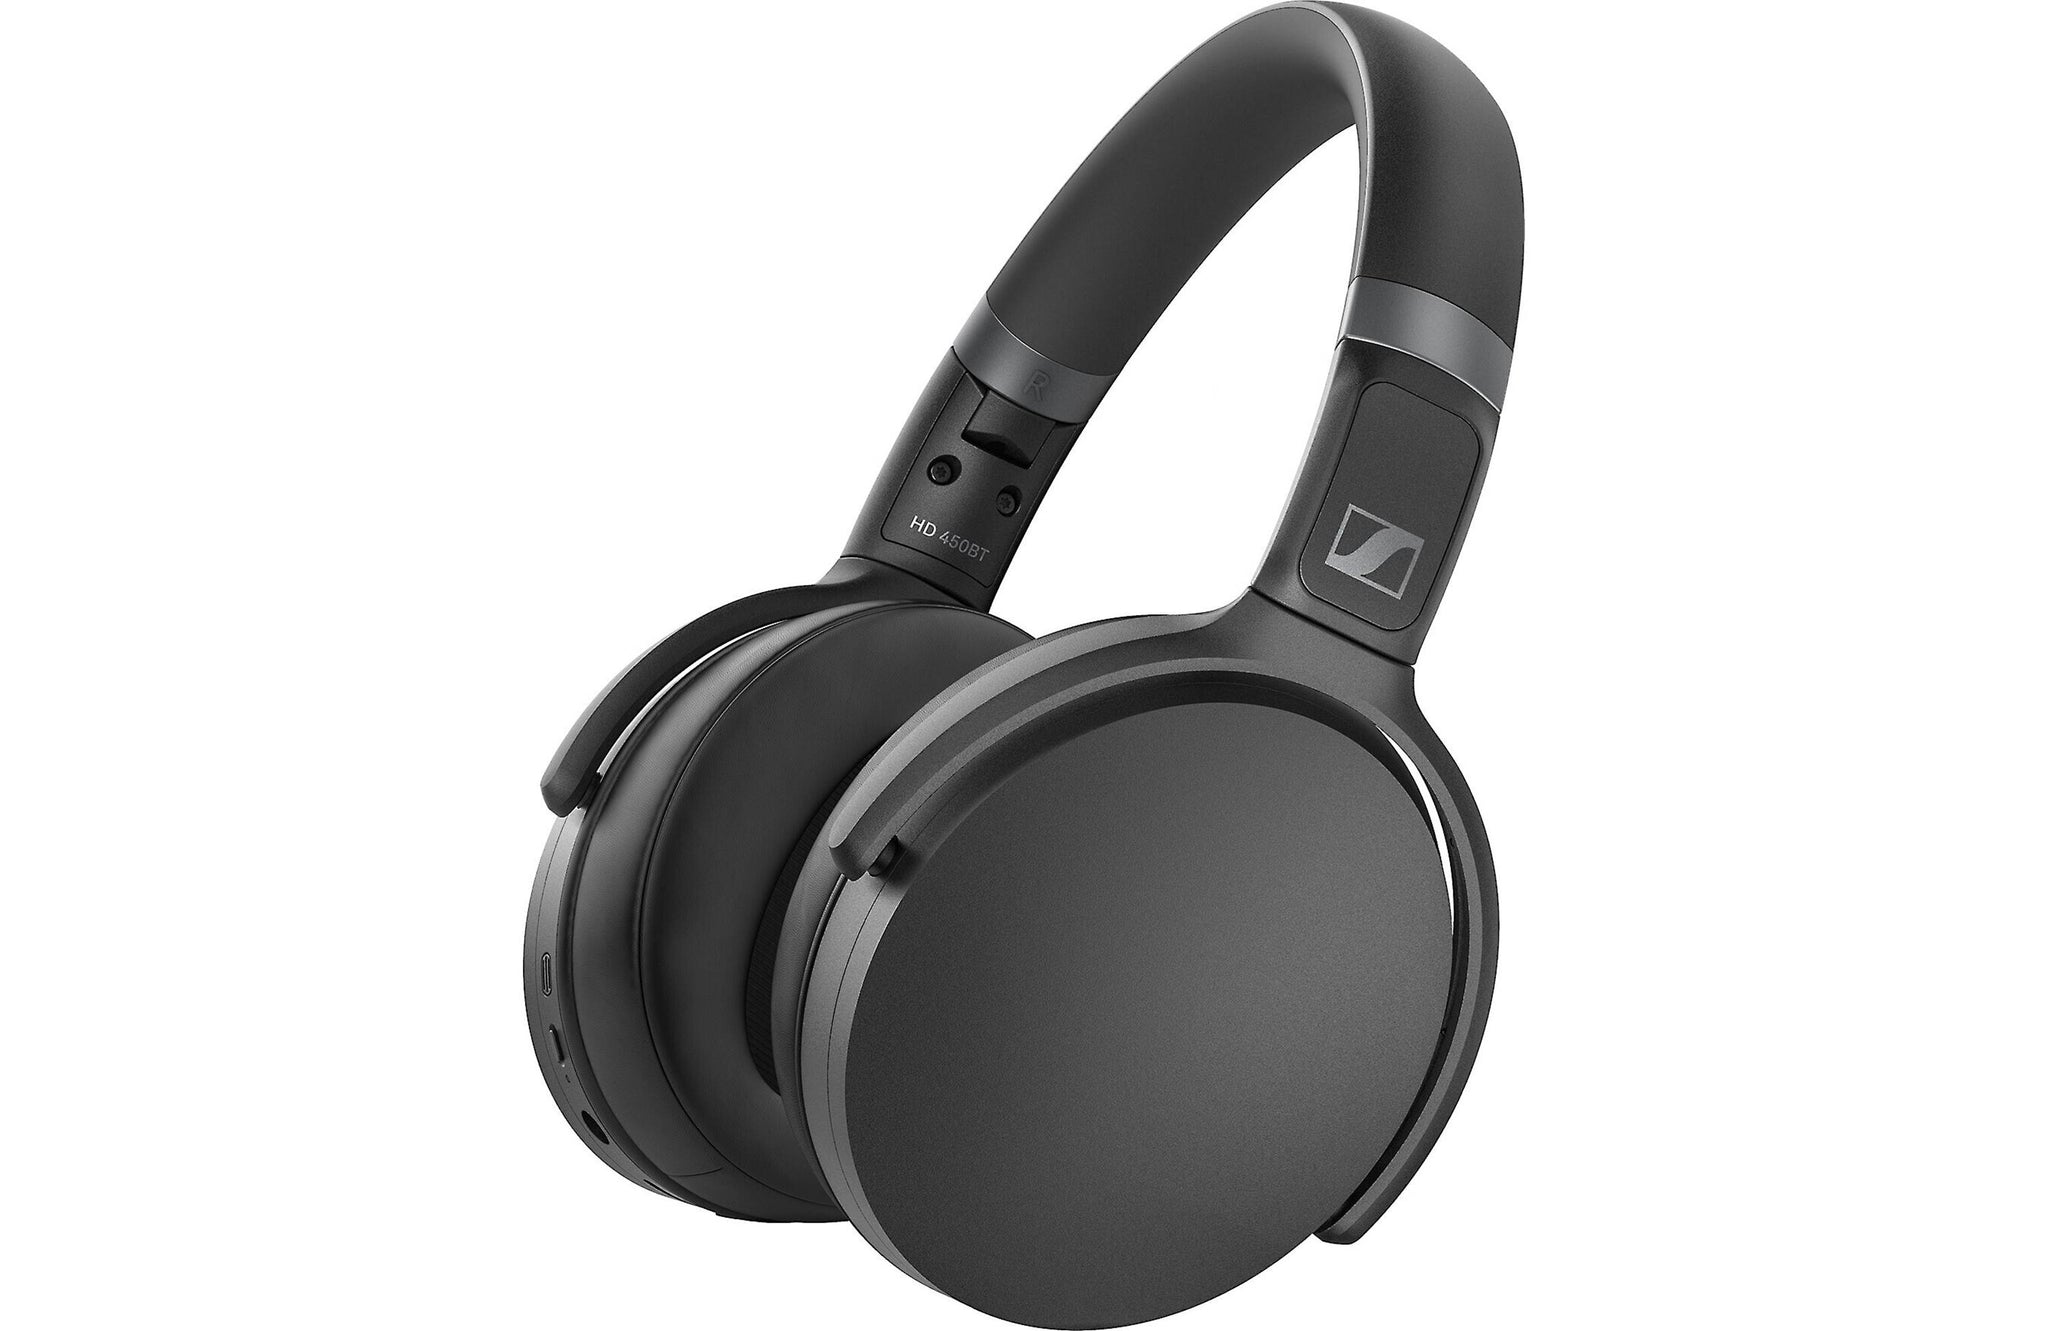 Sennheiser HD 450BT Bluetooth 5.0 Wireless Headphone with Active Noise Cancellation